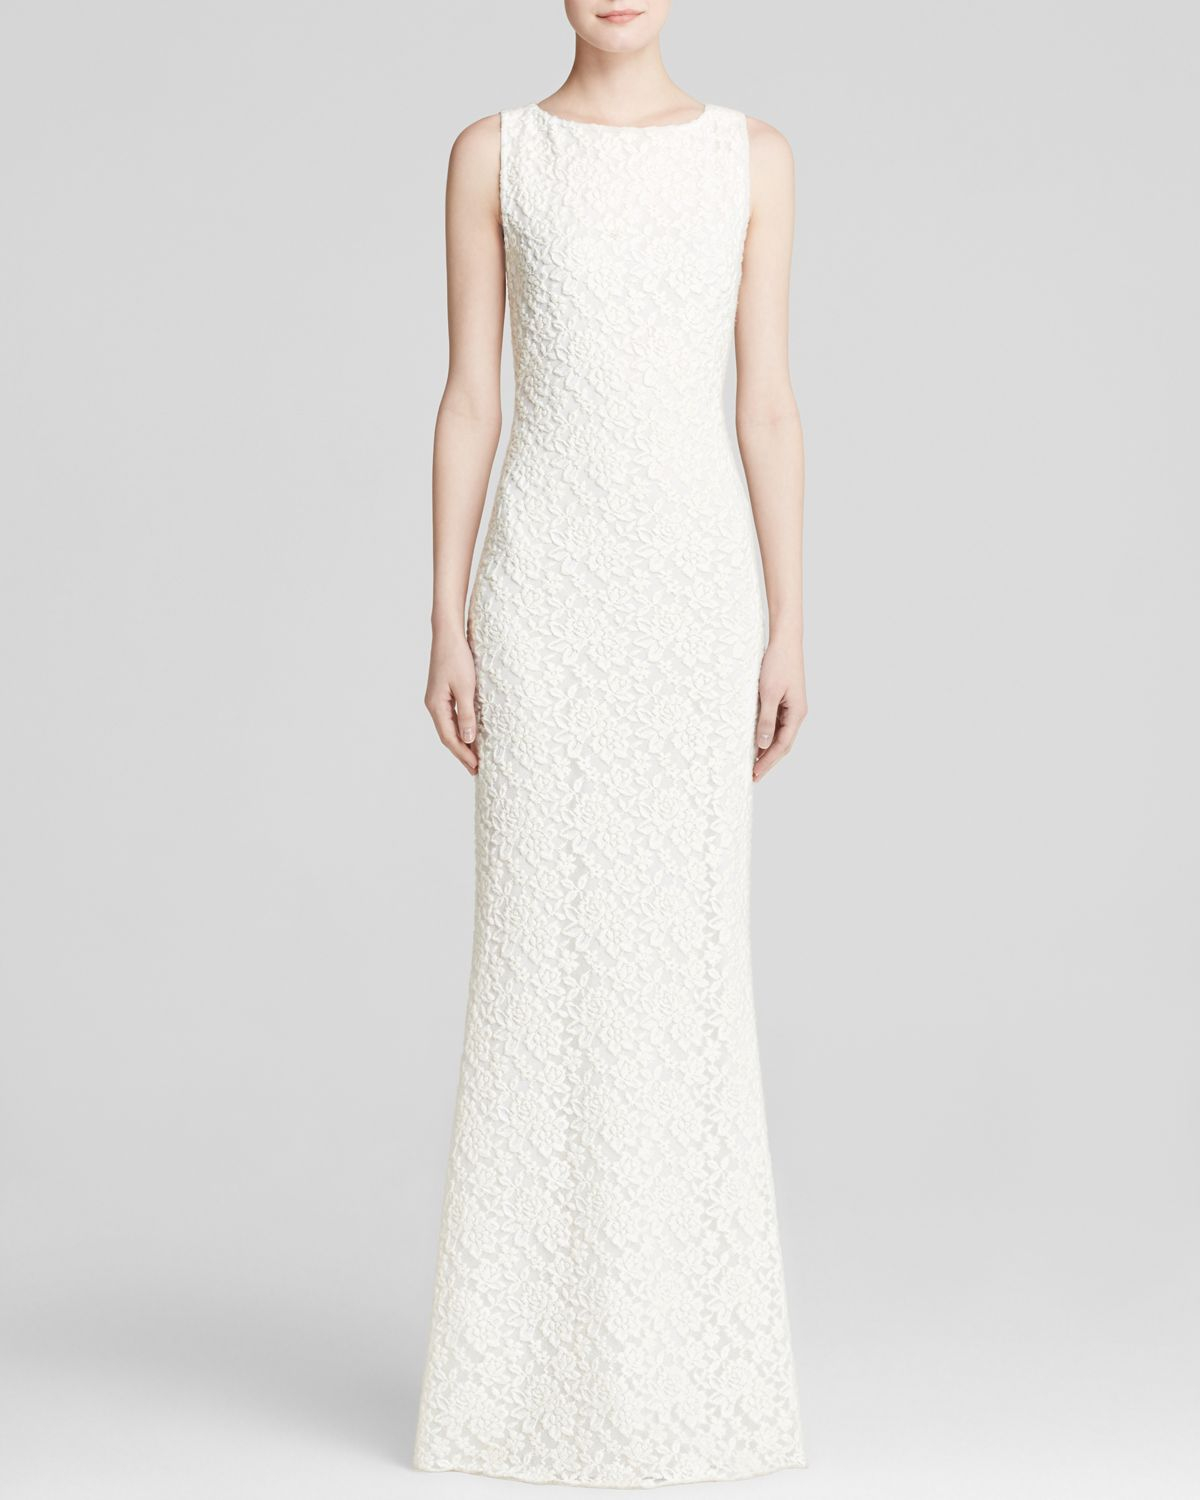 Alice Olivia White Gown Sachi Lace Ivory